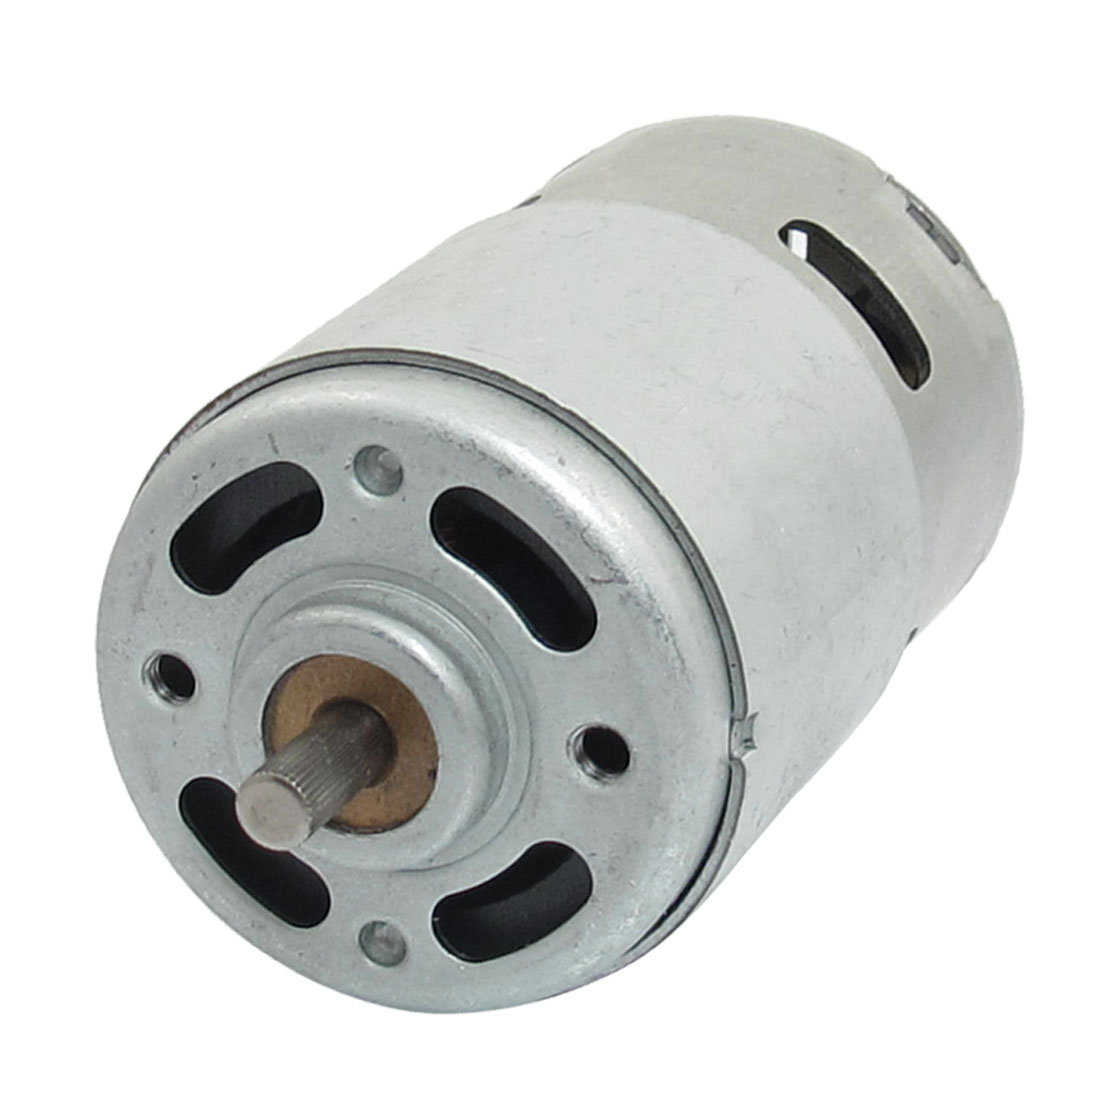 5mm Knurled Shaft 44mm Dia Magnetic Electric Motor 7000RPM DC 24V